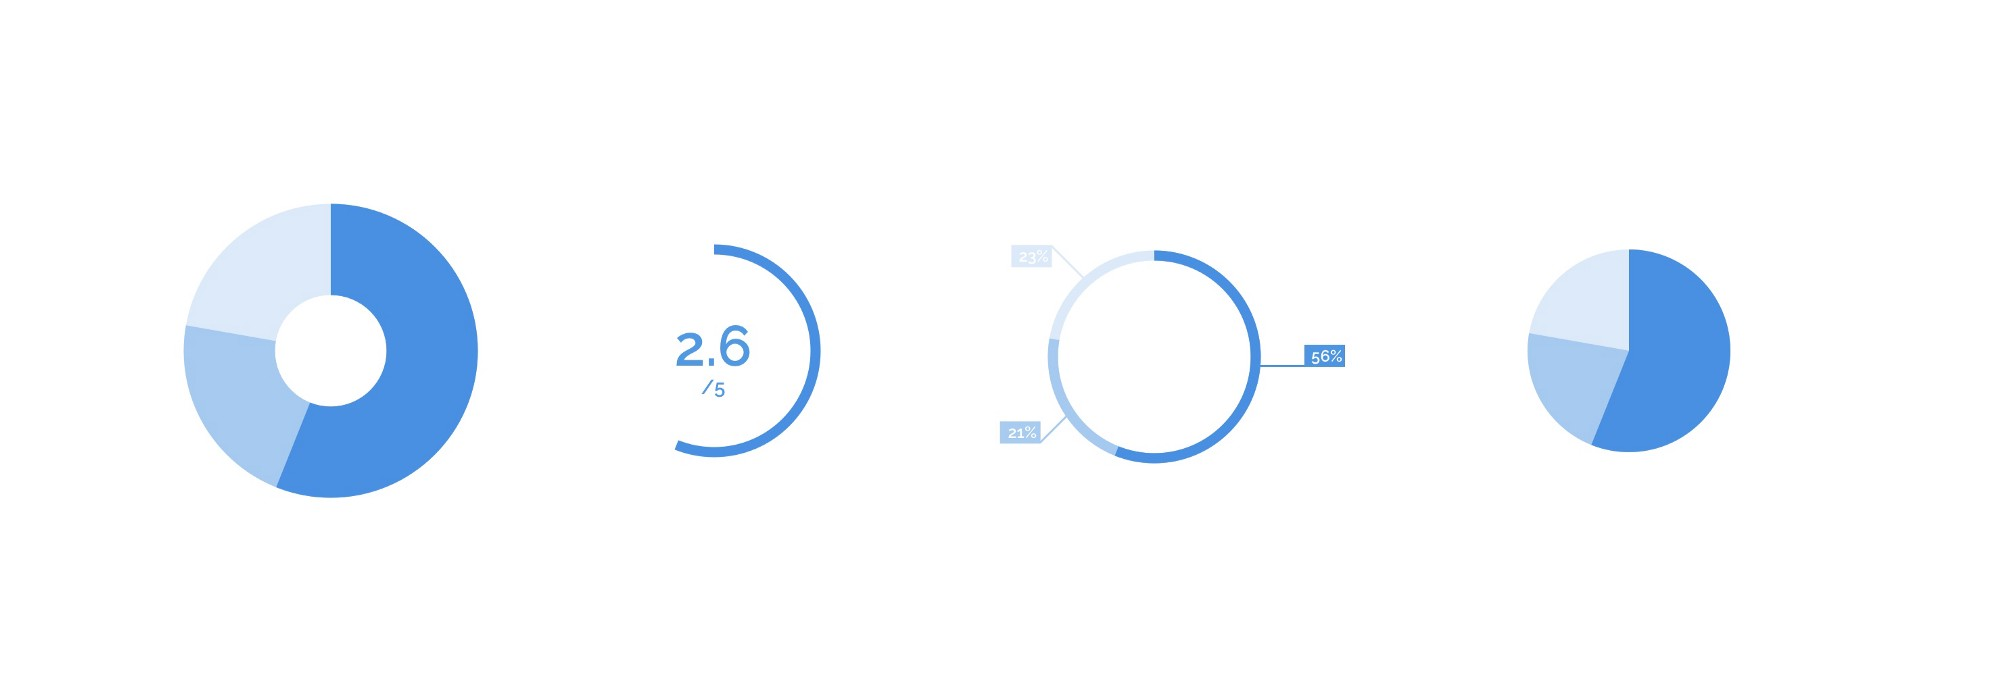 3 Easy Steps To Create Percentage Circles And Pie Charts In Sketch